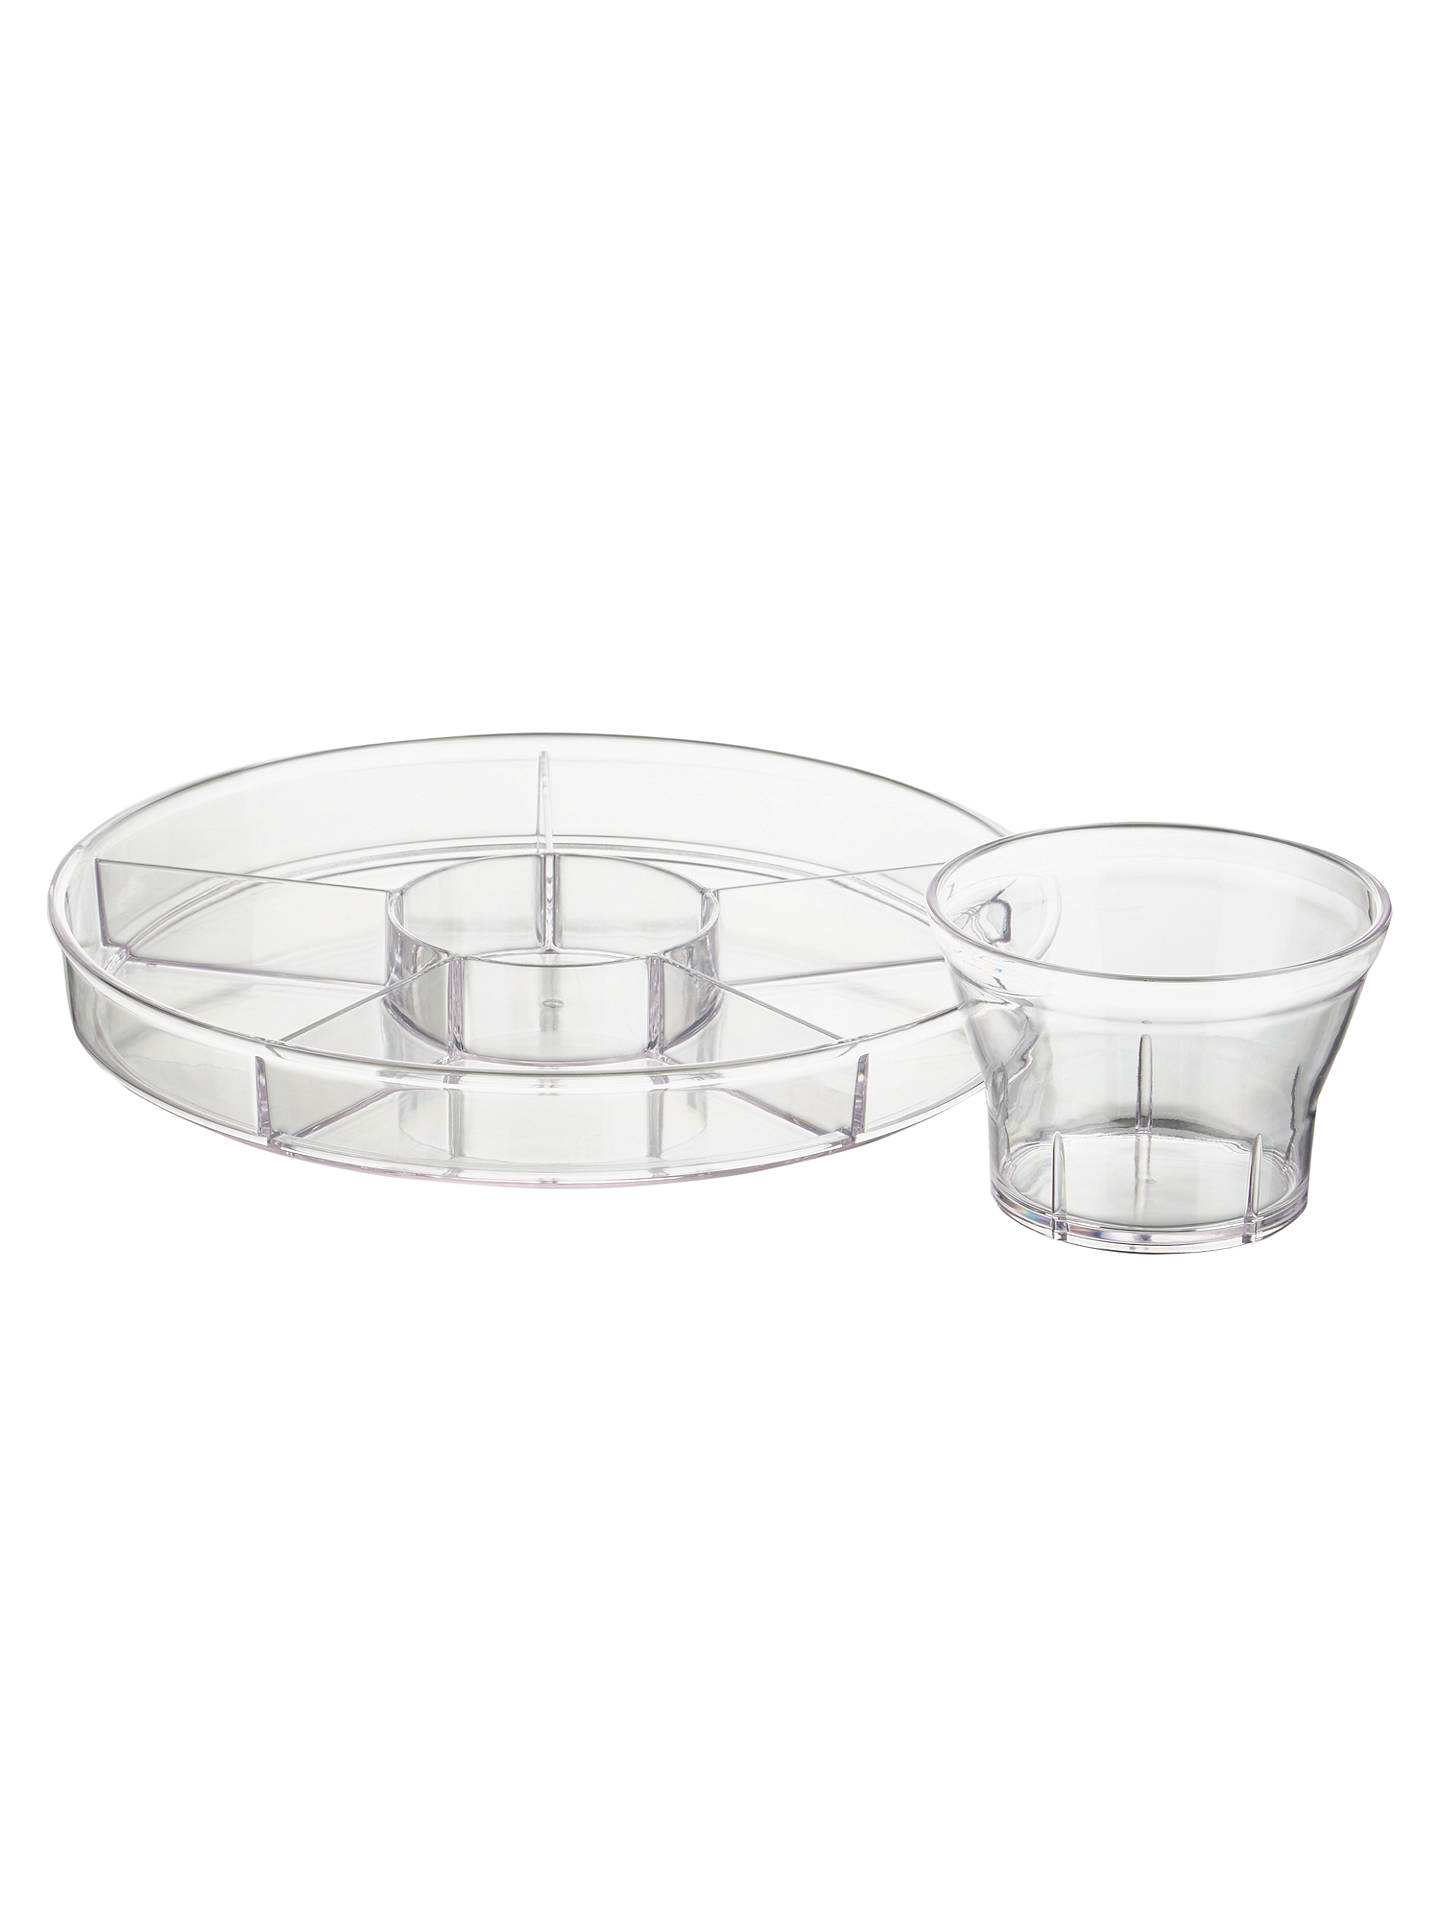 BuyJohn Lewis 4-In-1 Punch Bowl and Glasses Online at johnlewis.com